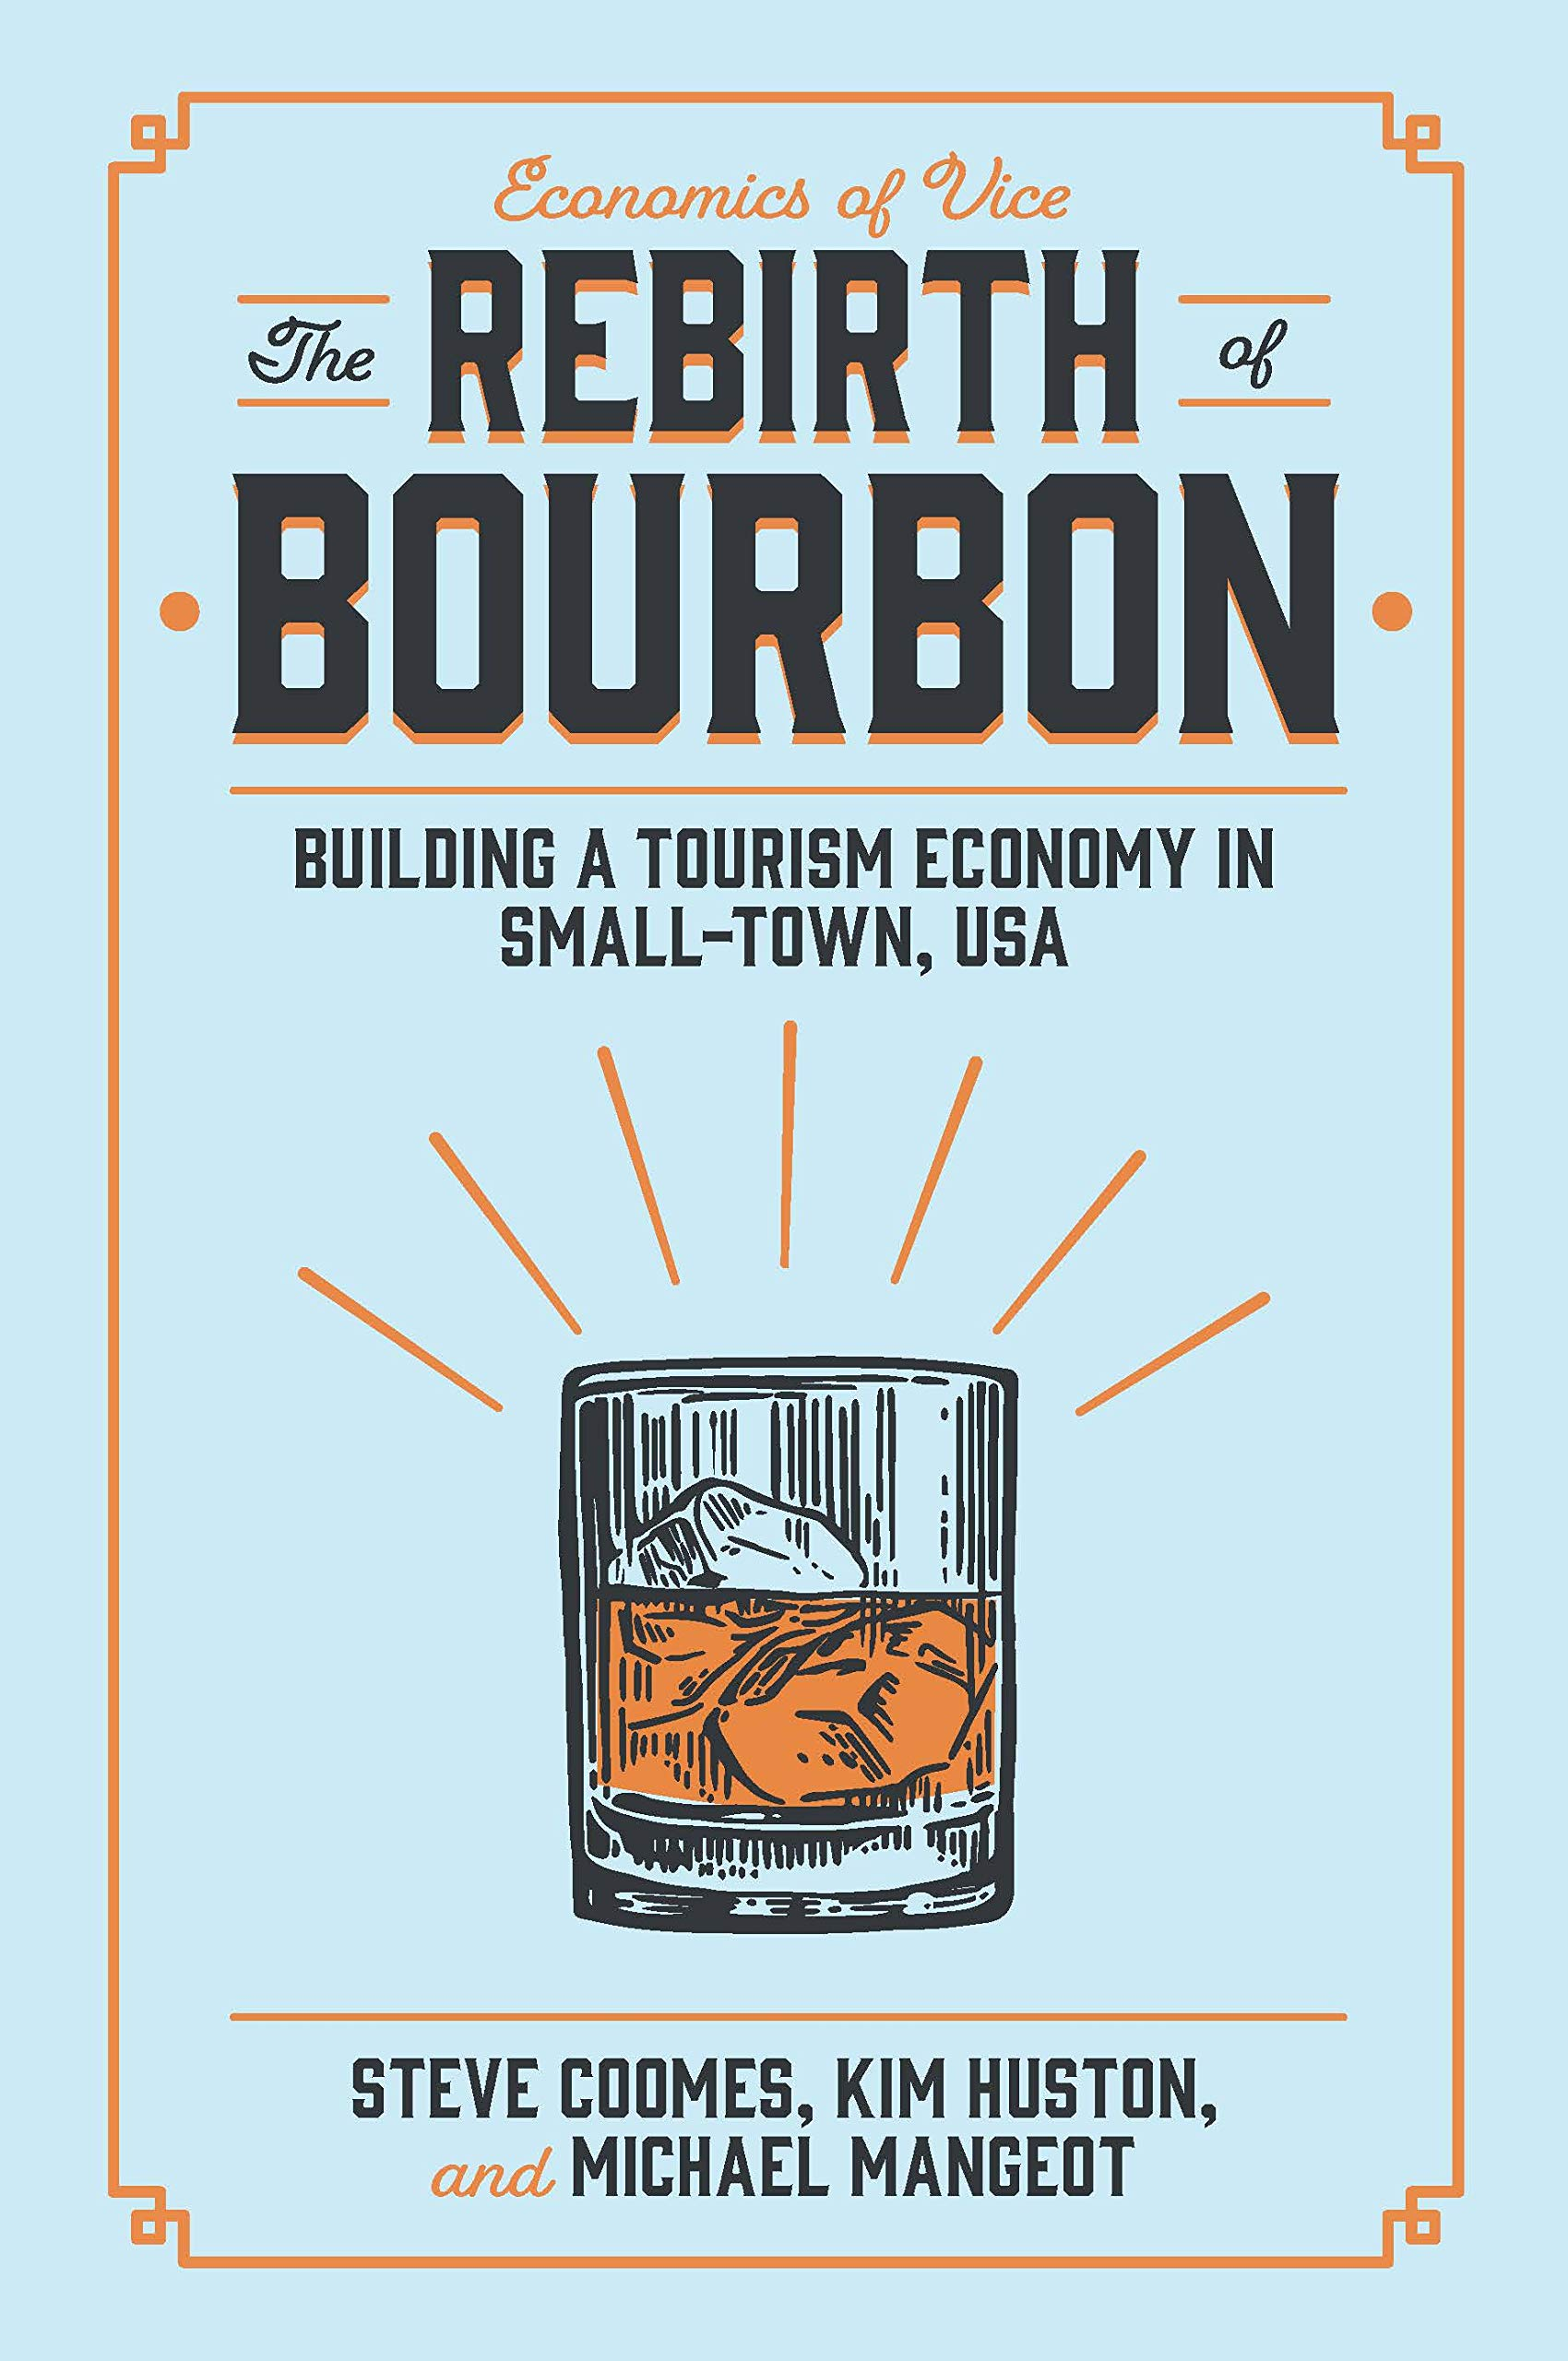 The Rebirth of Bourbon: Building a Tourism Economy in Small-Town, USA (Economics of Vice)